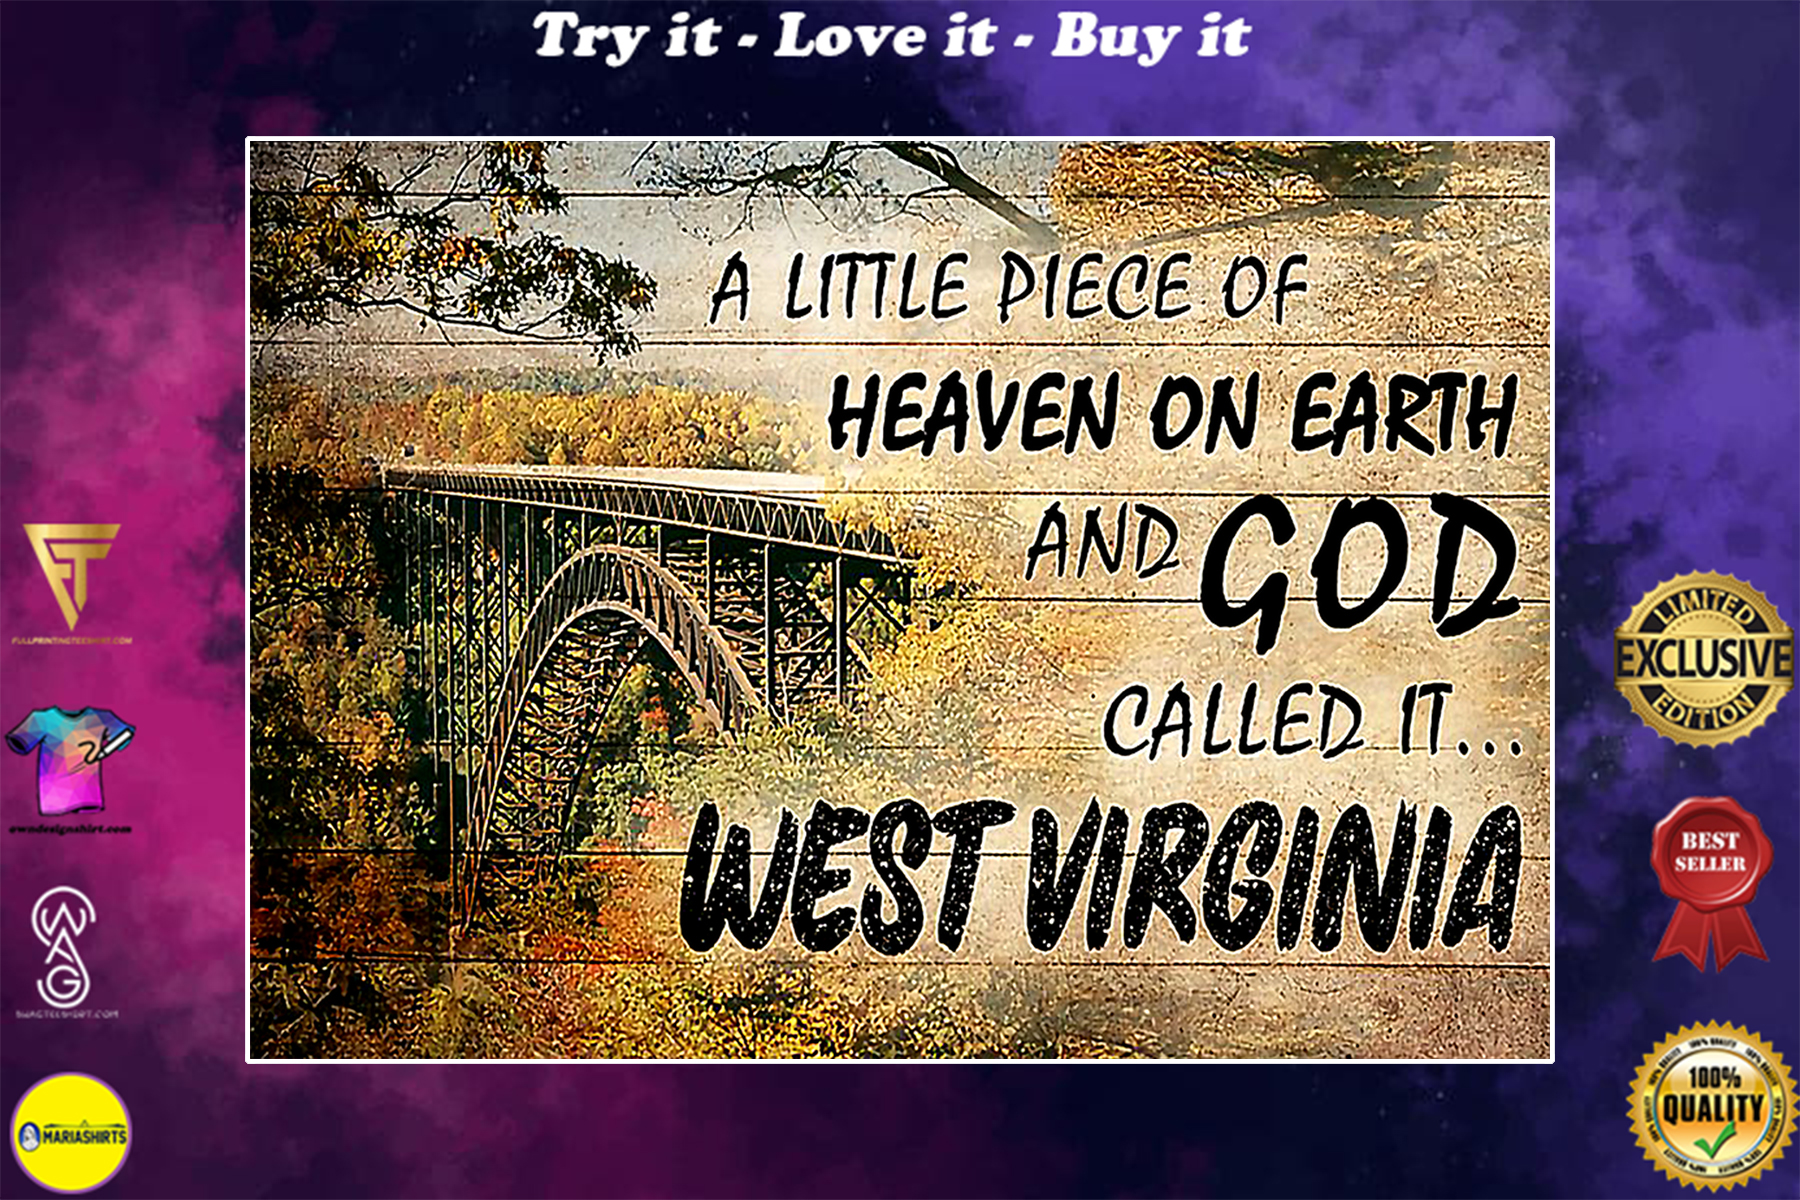 A little piece of heaven on earth and God called it west virginia vintage poster